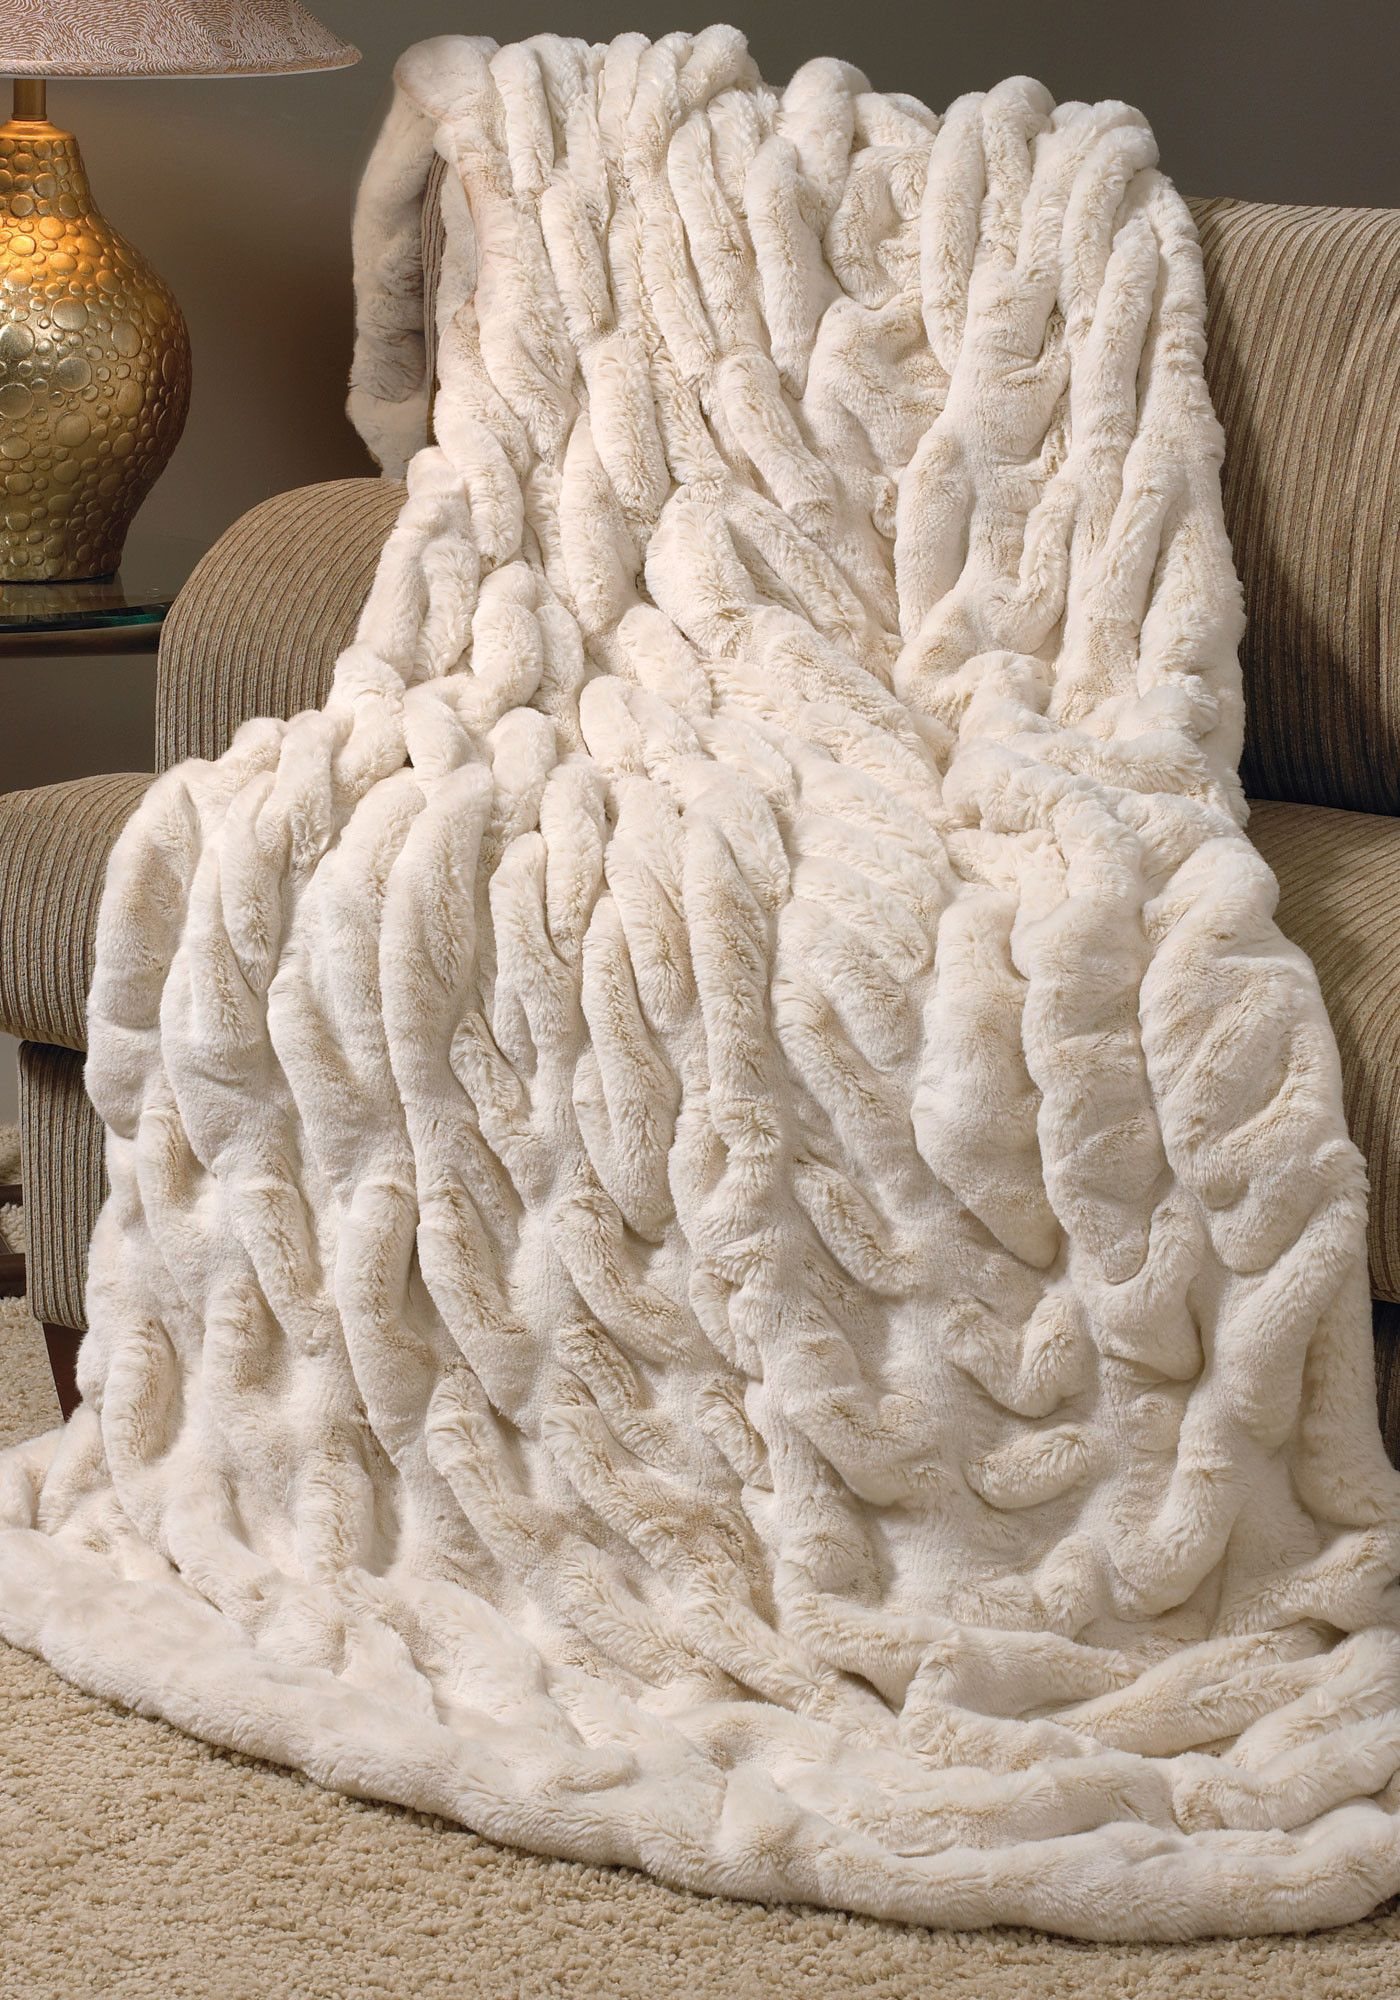 This Stylish Throw Is The Perfect Gift For That Special Person Or A Luxurious Way To Treat Yourself Faux Fur Throw Blanket Faux Fur Blanket Fur Throw Blanket